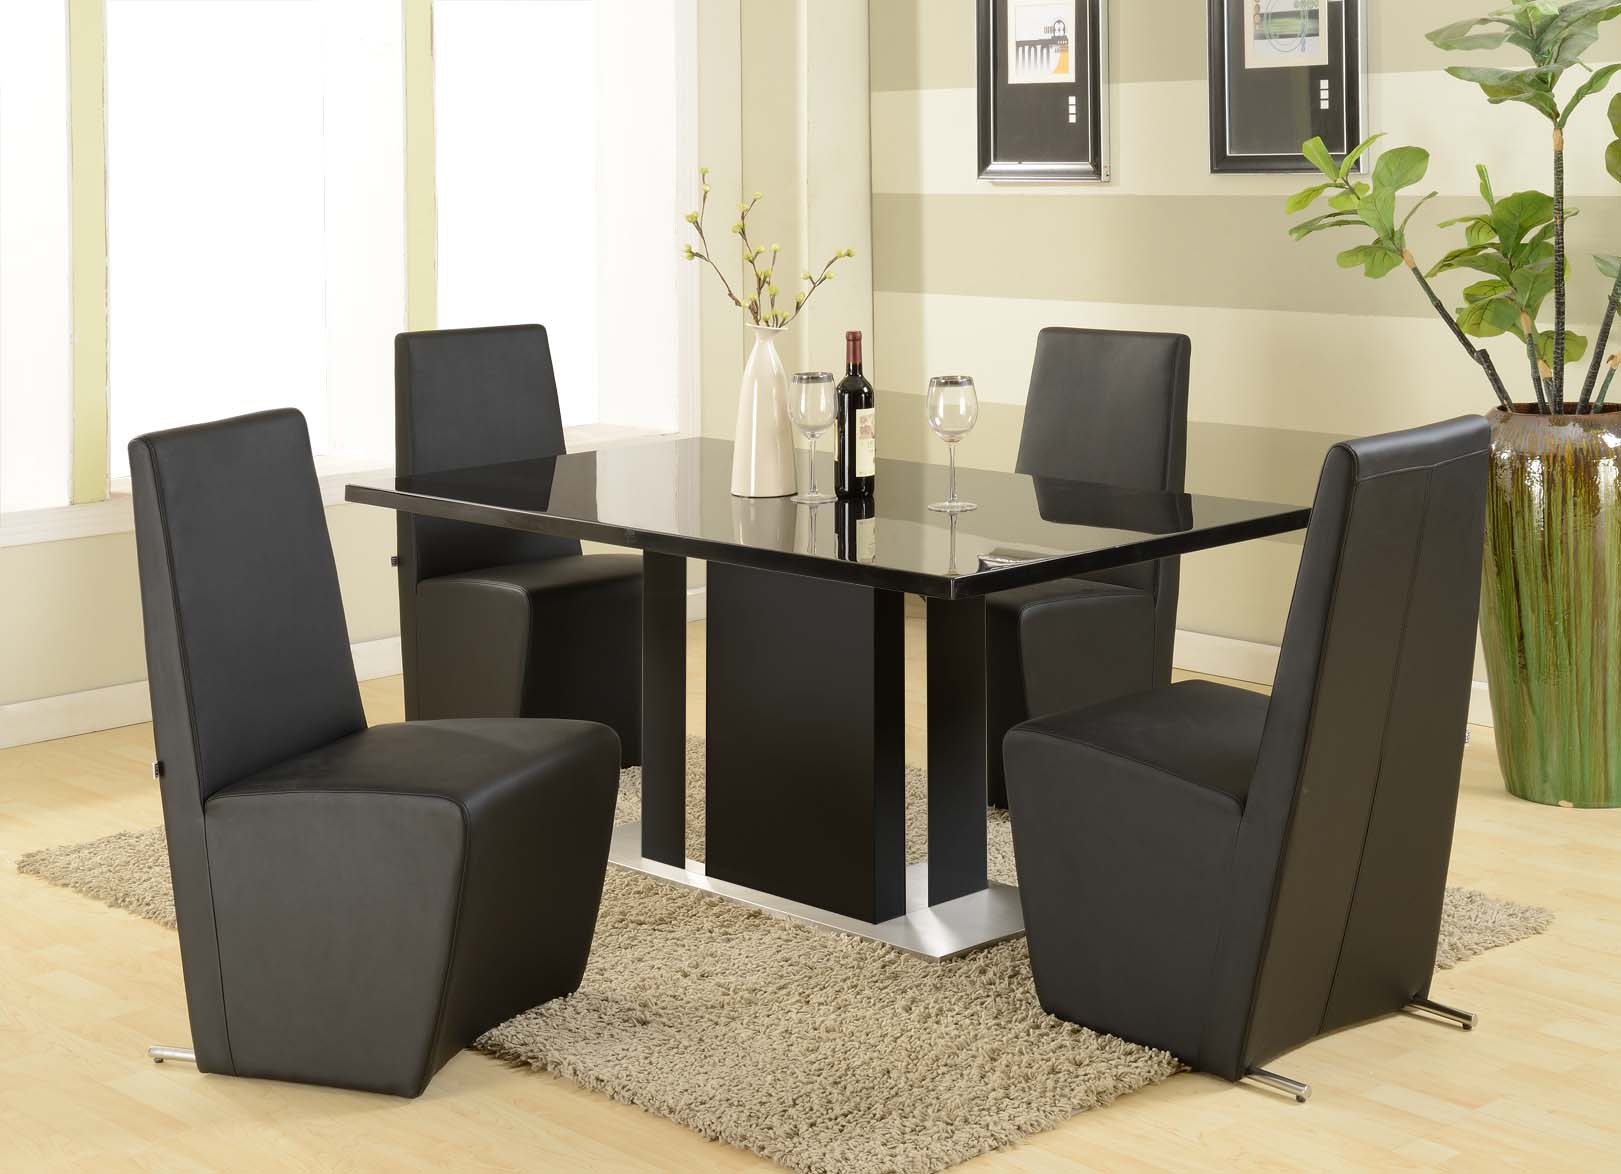 Modern furniture table home design roosa for Contemporary table